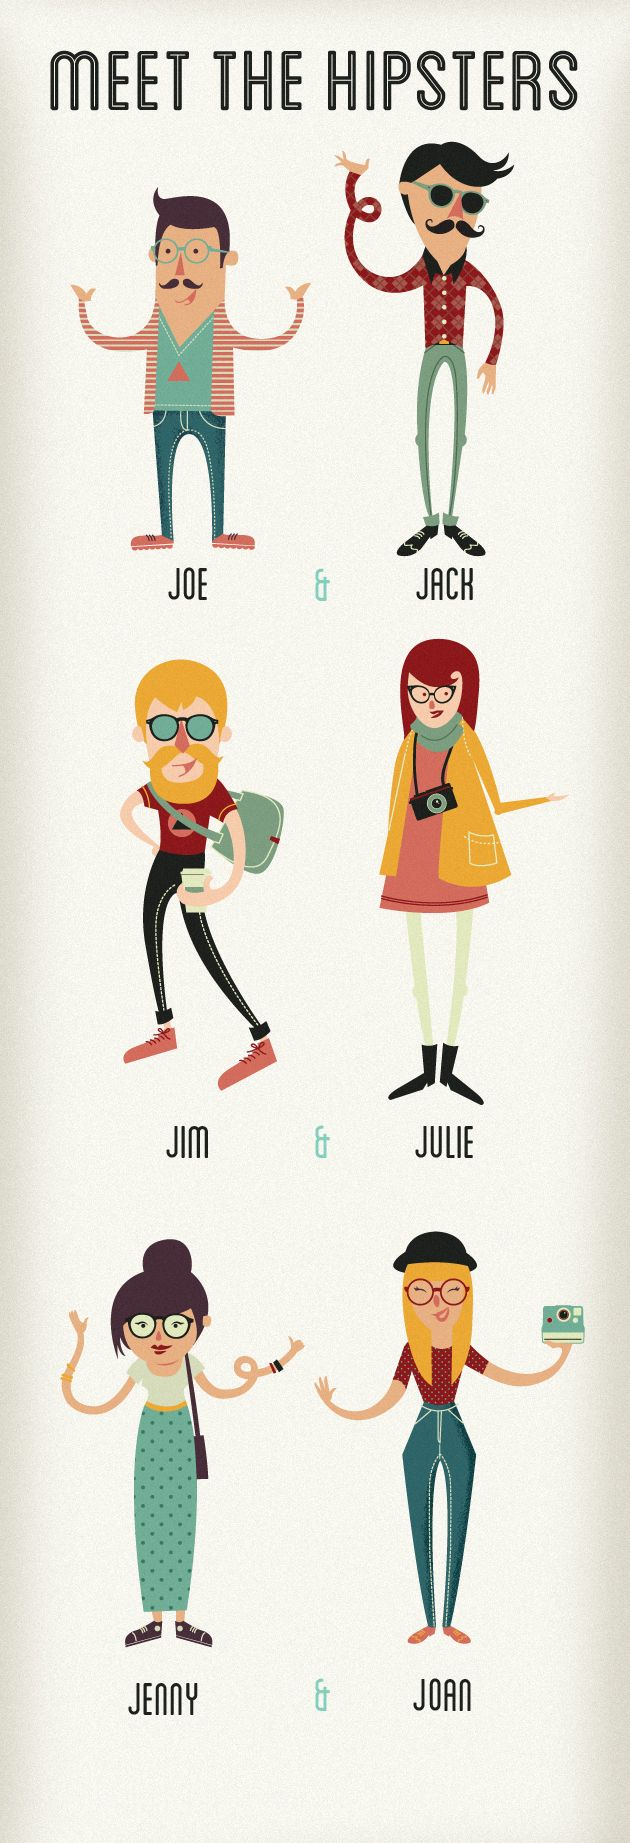 designtnt-vector-hipster-characters-1-large.jpg (630×1843)